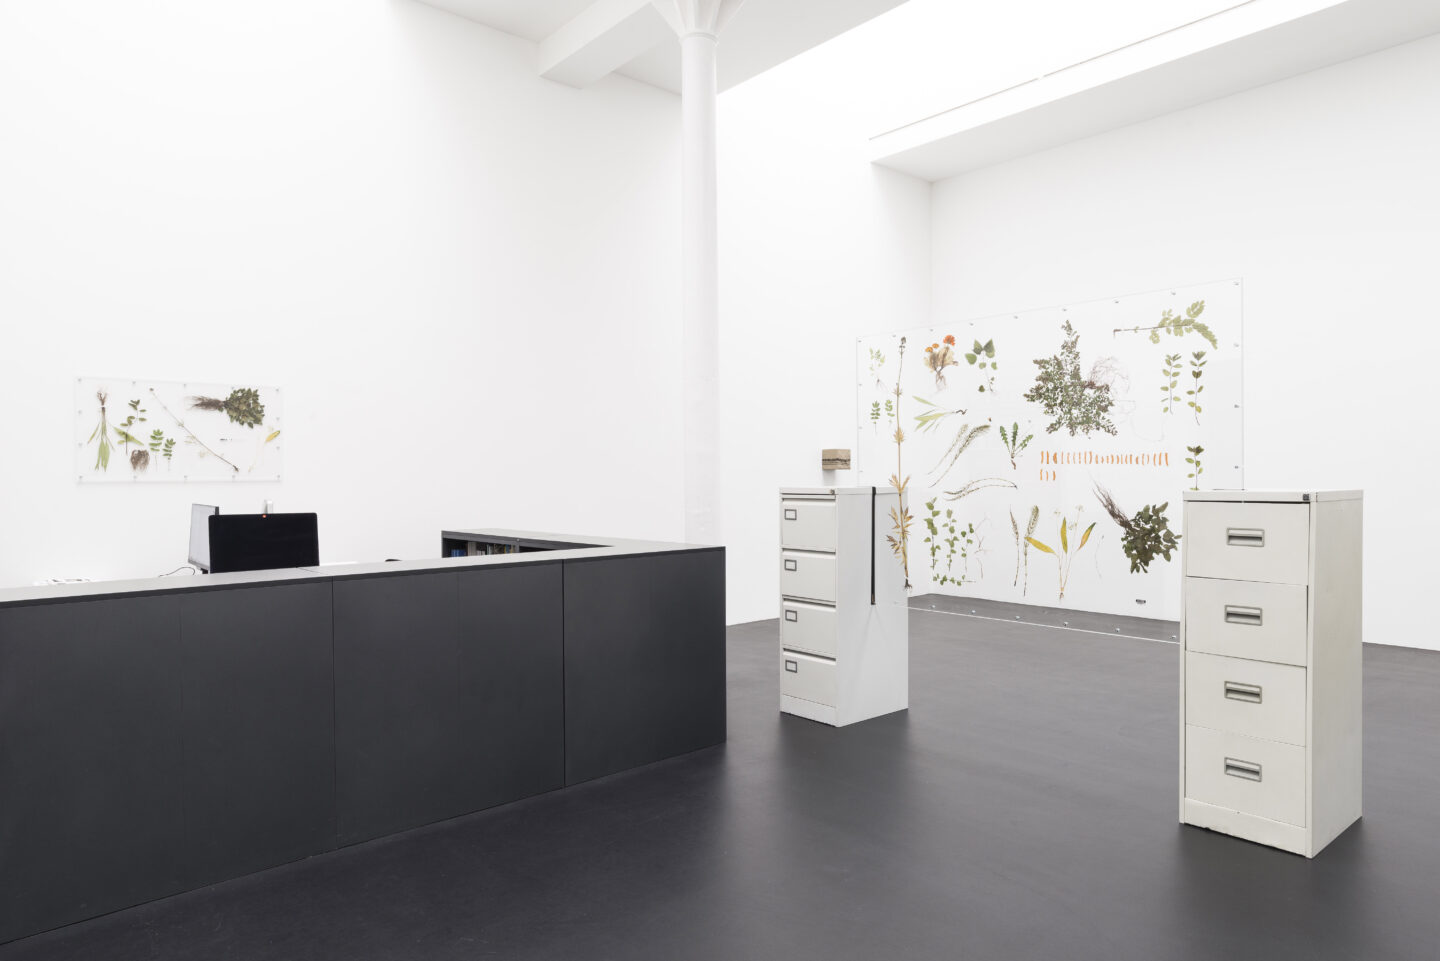 Exhibition View Rachal Bradley Soloshow «Erotics of Infrastructure iii» at Galerie Gregor Staiger, Zurich, 2020 / Courtesy: the artist and Galerie Gregor Staiger